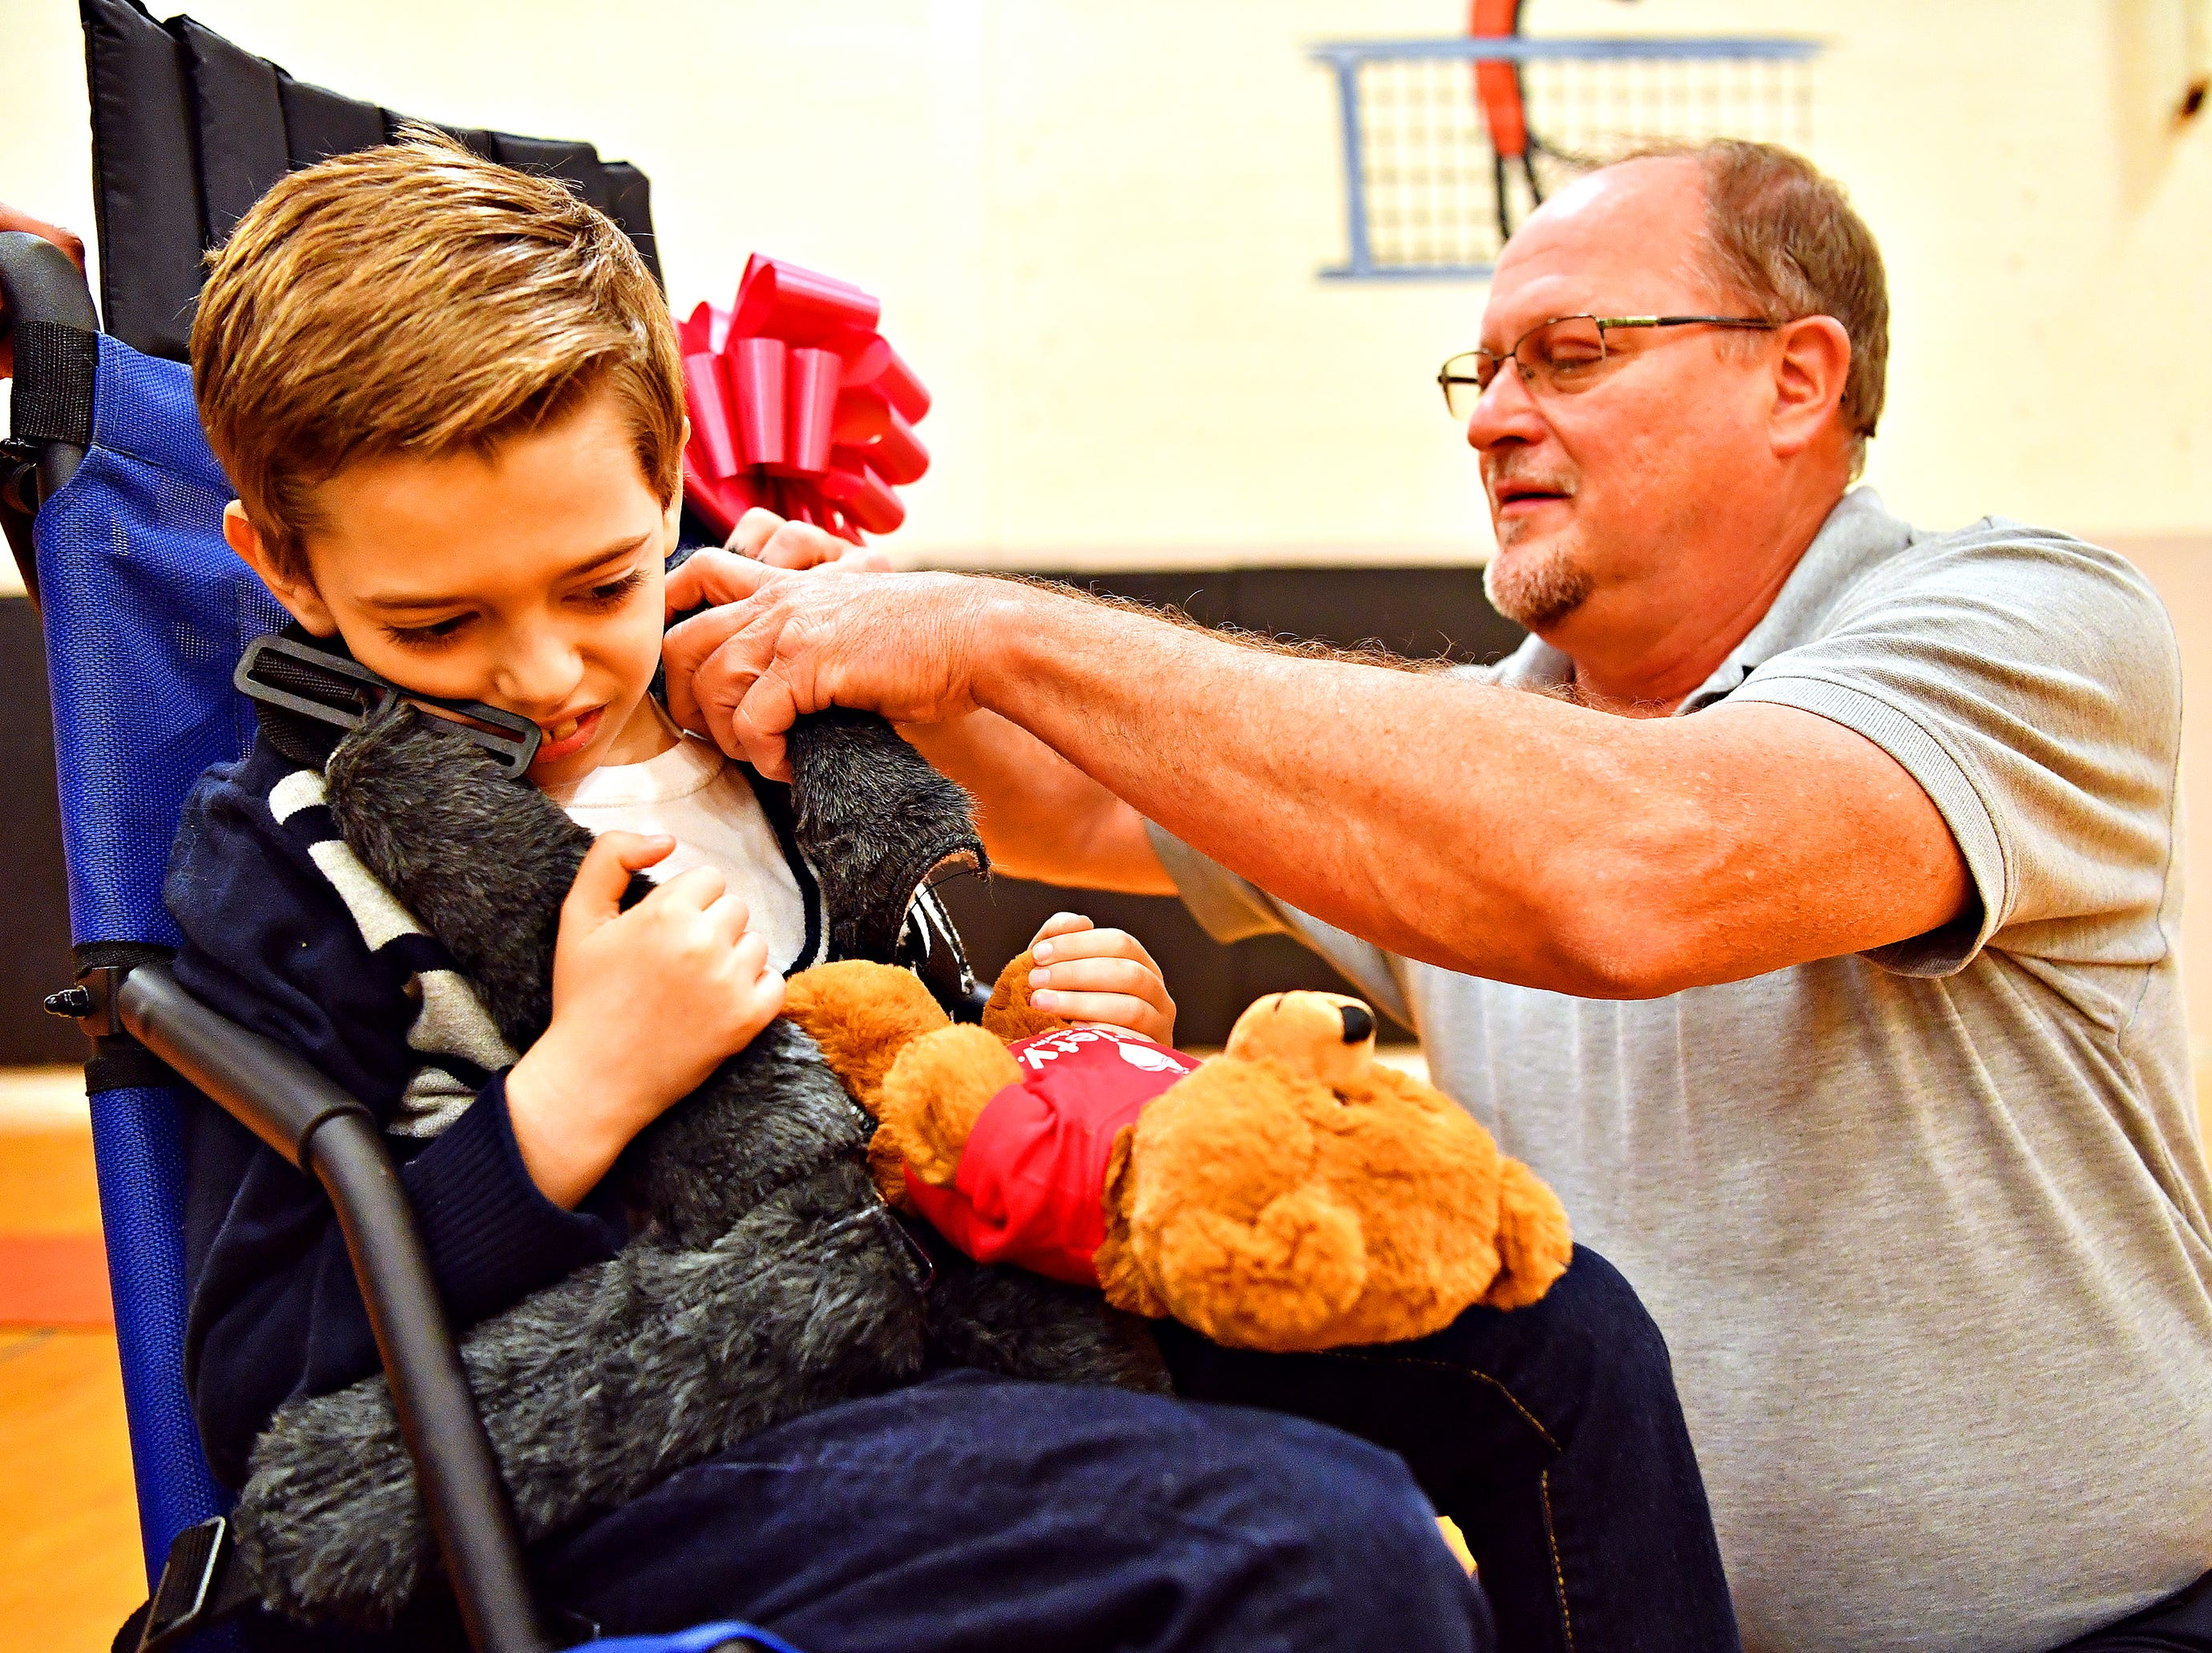 Randy Prunty, of Blackburn's, secures Christian Glass, 9, of Conewago Township in Adams County, into his new adaptable stroller as Prunty partners with Variety, the Children's Charity, based in Pittsburg, to present Blackburn's adaptable equipment to children with disabilities at York Learning Center in North York, Tuesday, May 14, 2019. Dawn J. Sagert photo